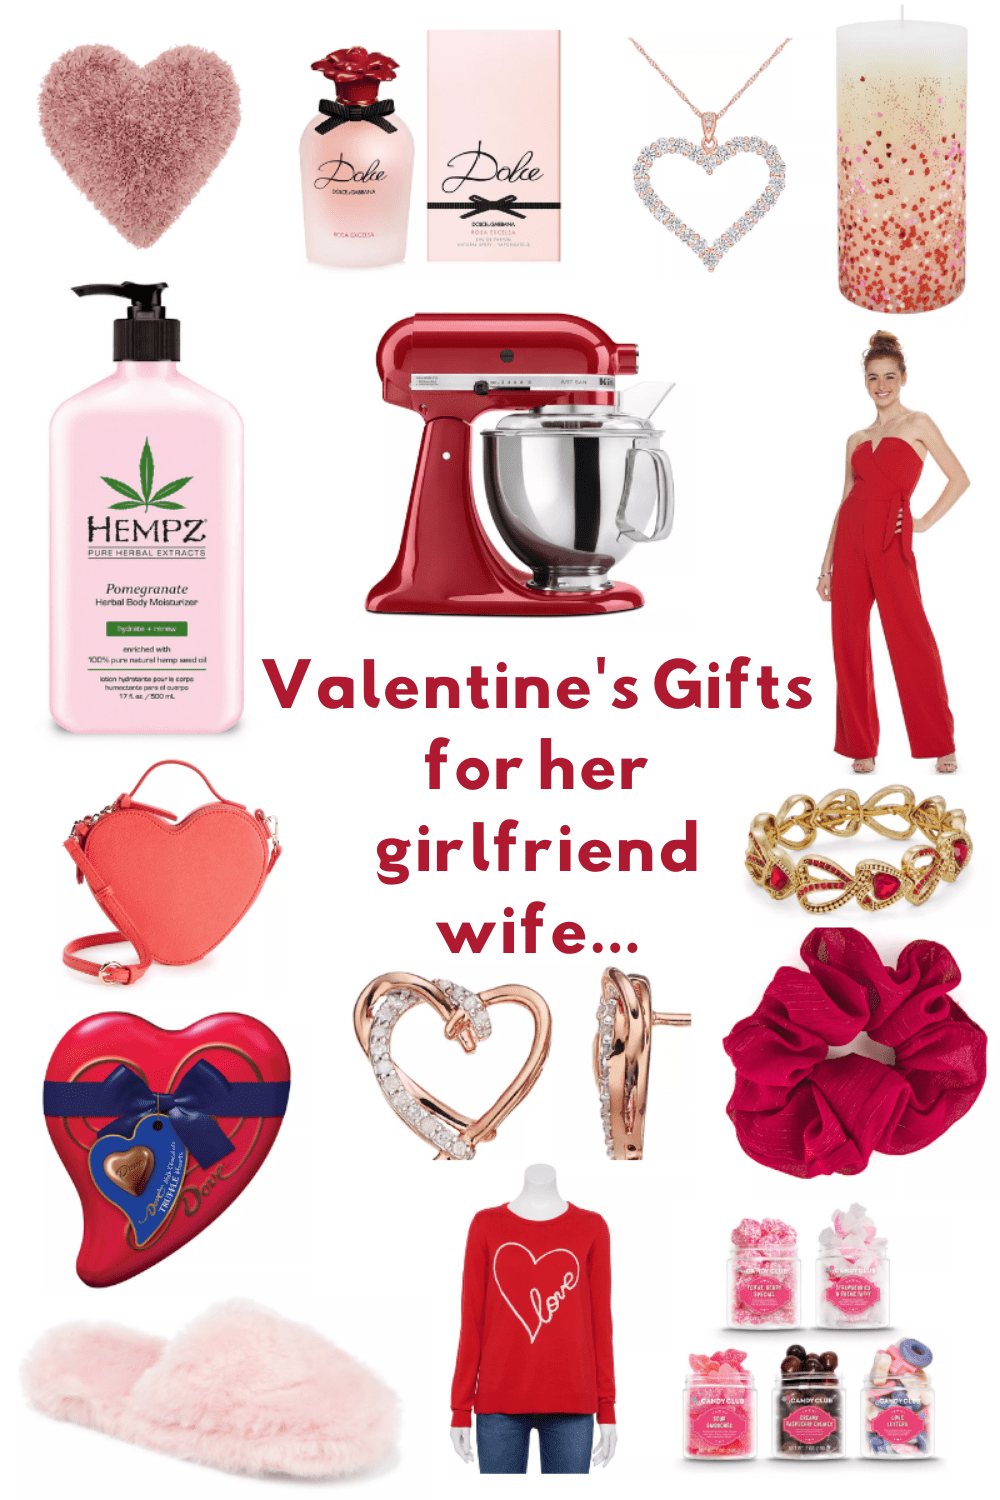 15 Valentine's Day Gifts Wife, Girlfriend Or For Her At Kohl's